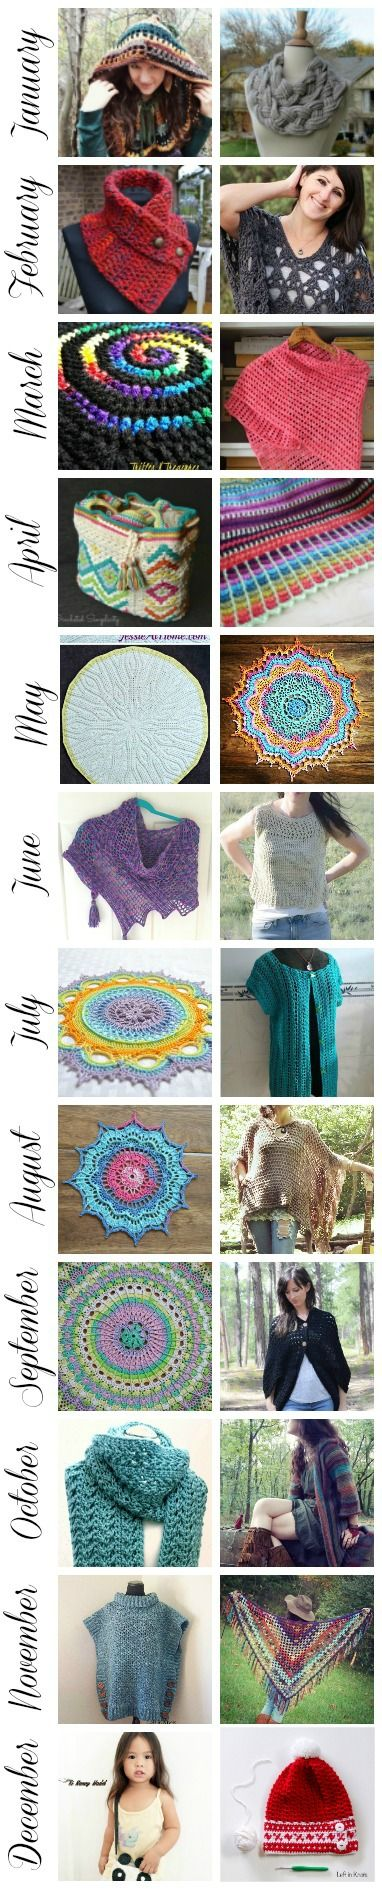 Best of Hookin' on Hump Day 2016 | www.petalstopicots.com | #crochet #fiber #knit